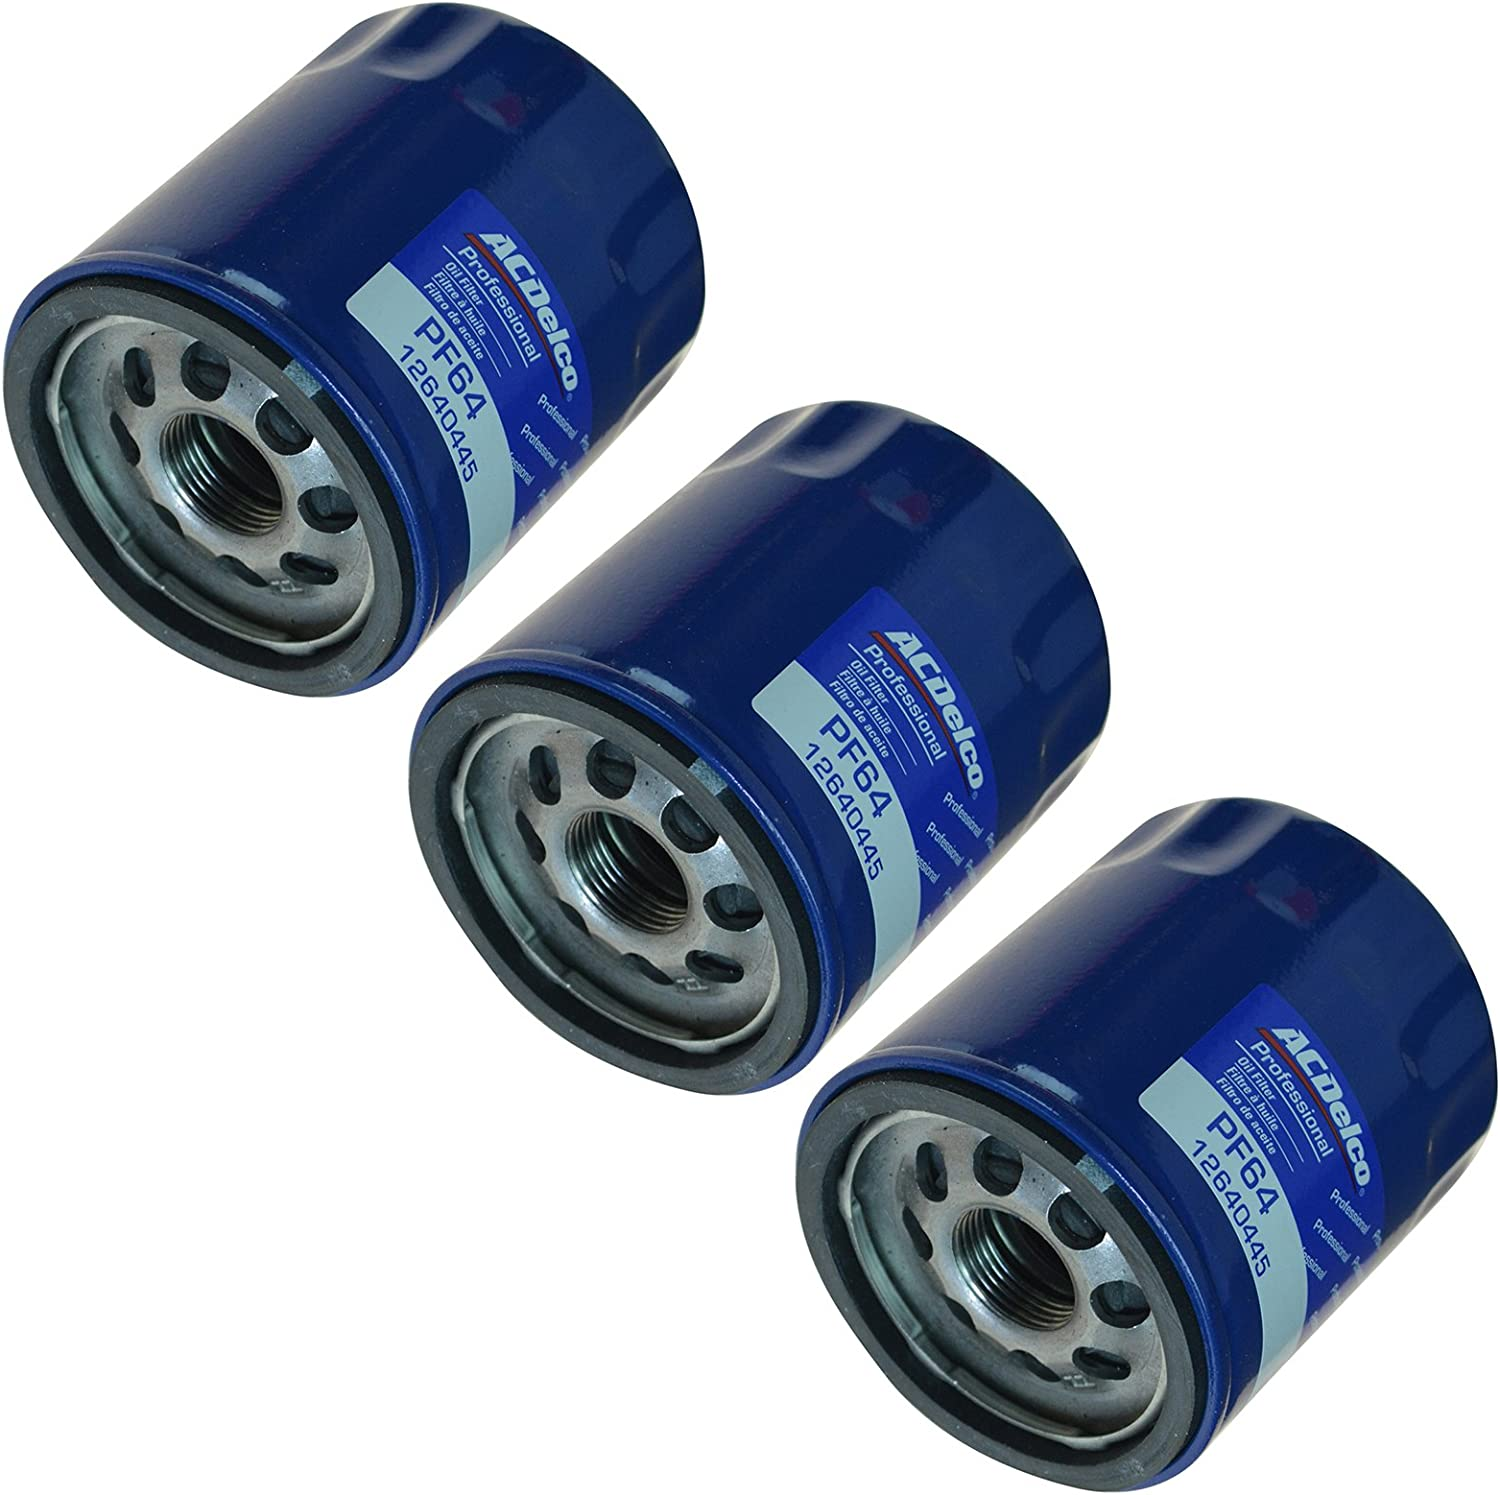 AC Delco PF64 Engine Oil Filter 格安 Set for of Chev Cadillac Buick 日本最大級の品揃え 3